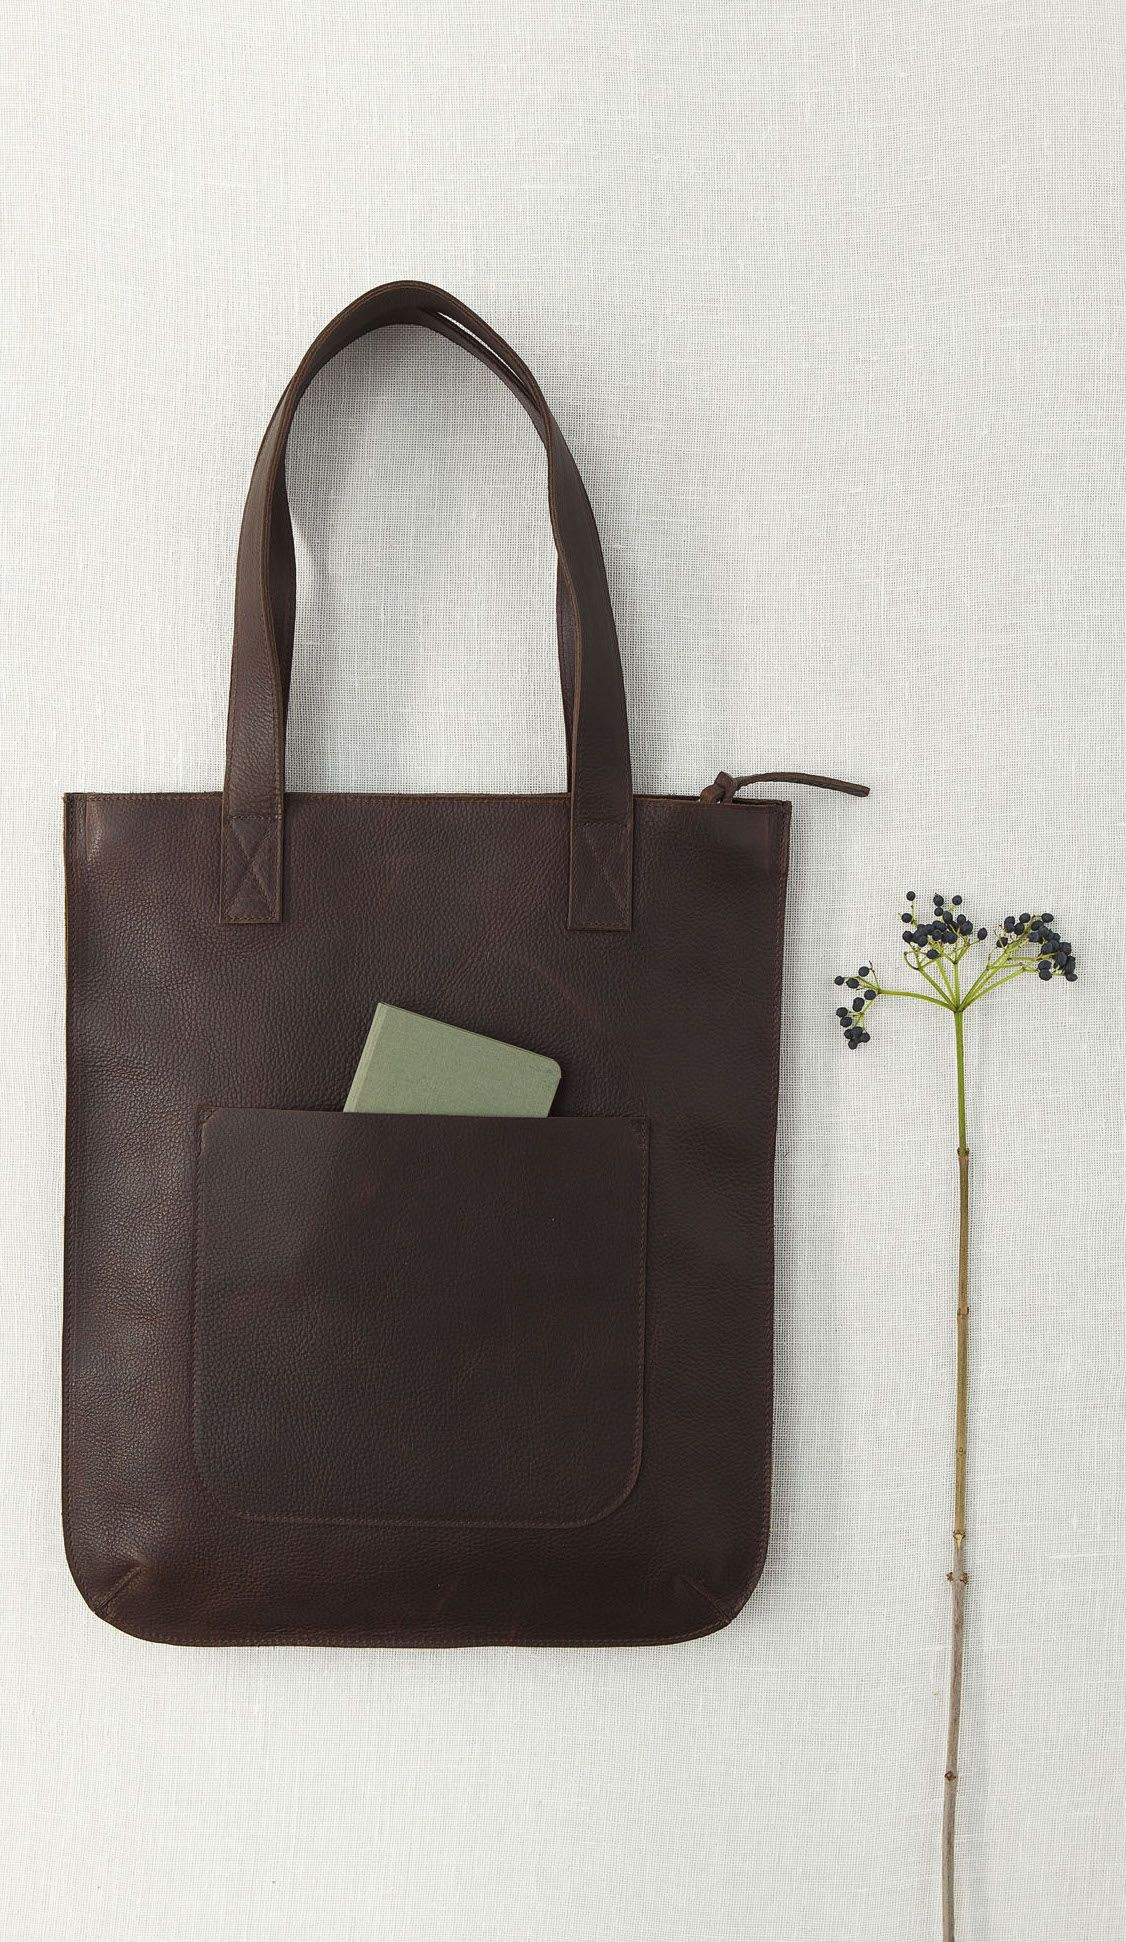 d92f3856e69 Keecie - hungry harry bag in darkbrown used look leather | bigger bags | grote  tas